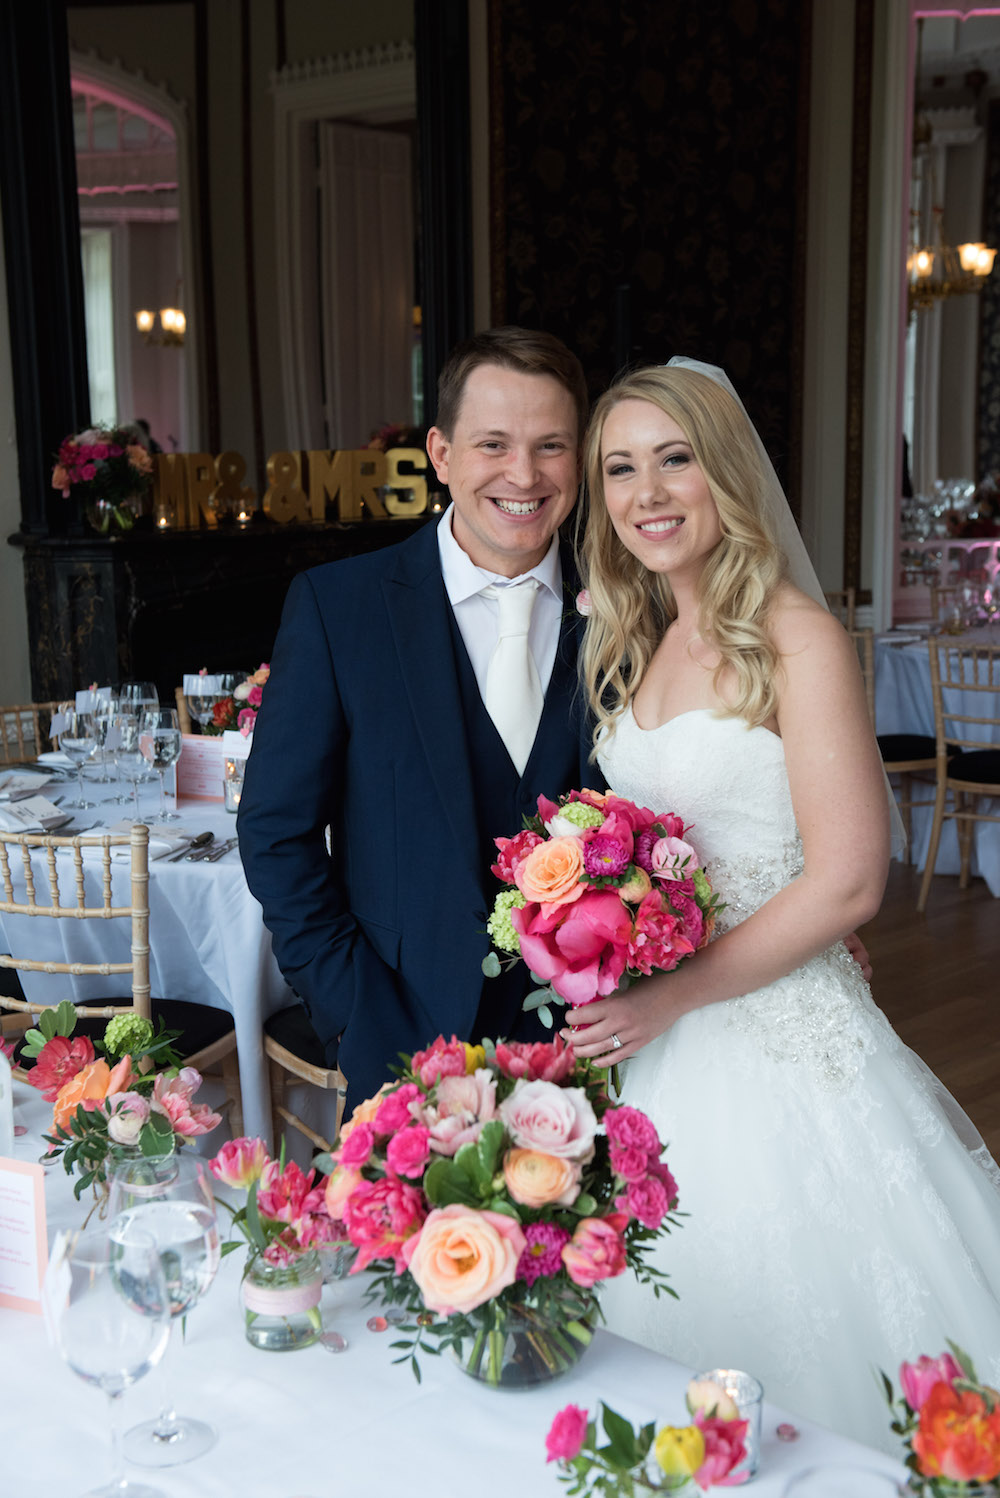 nonsuch mansion spring wedding, colourful table flowers